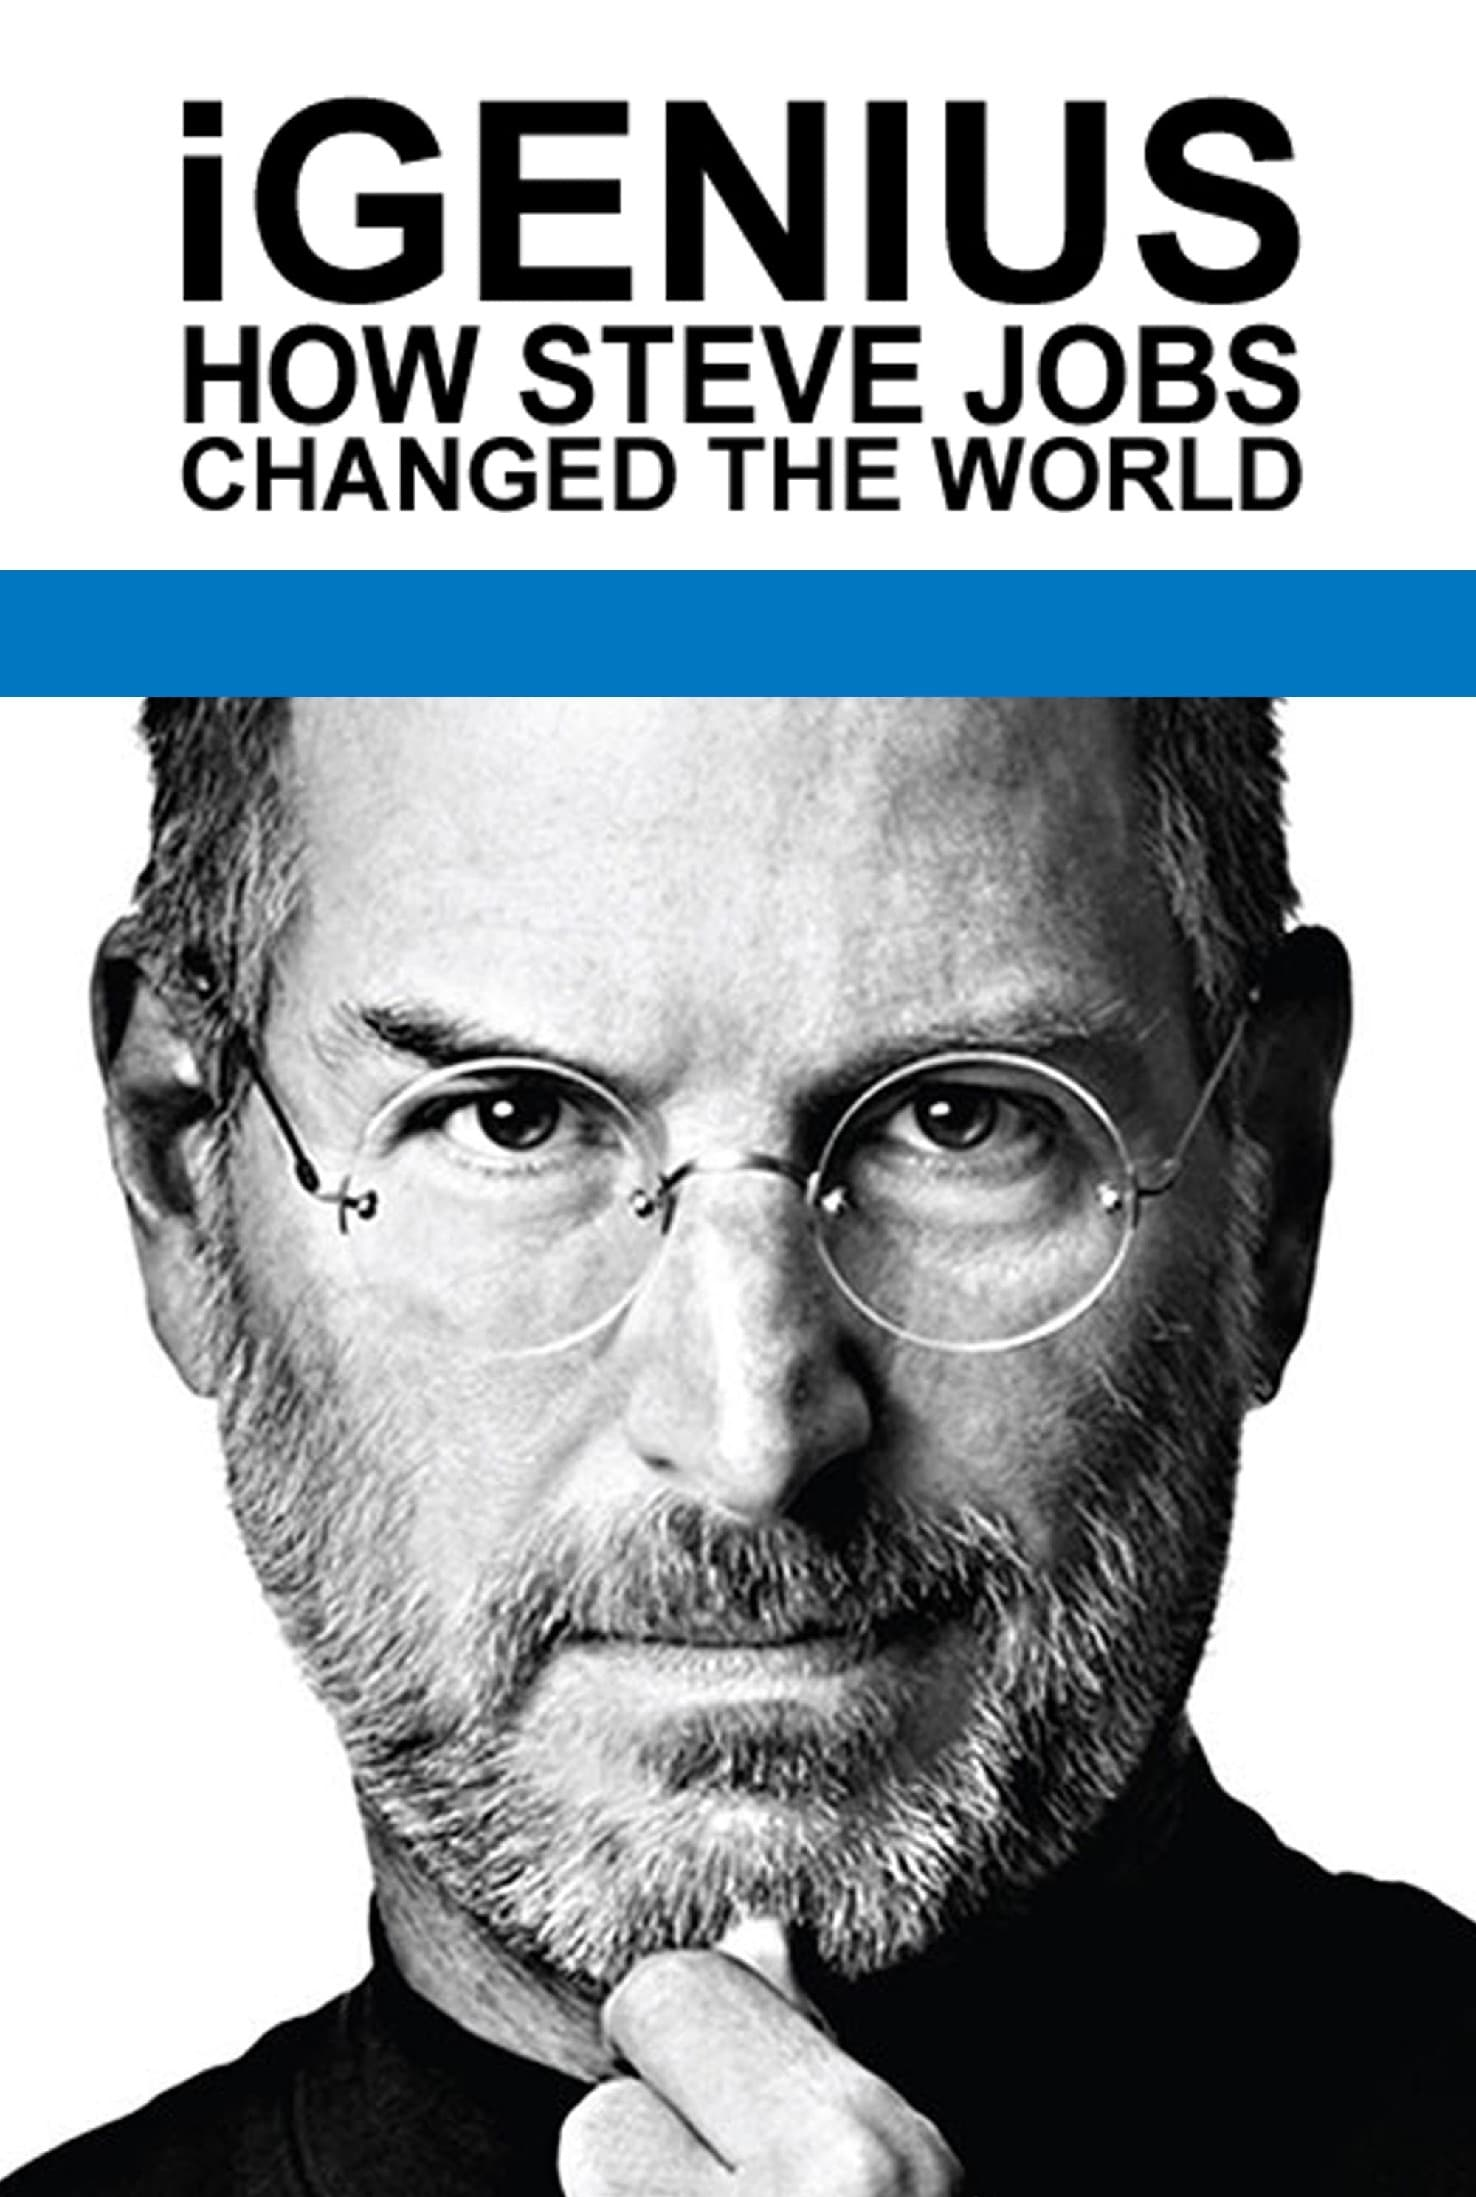 iGenius: How Steve Jobs Changed the World (2011)